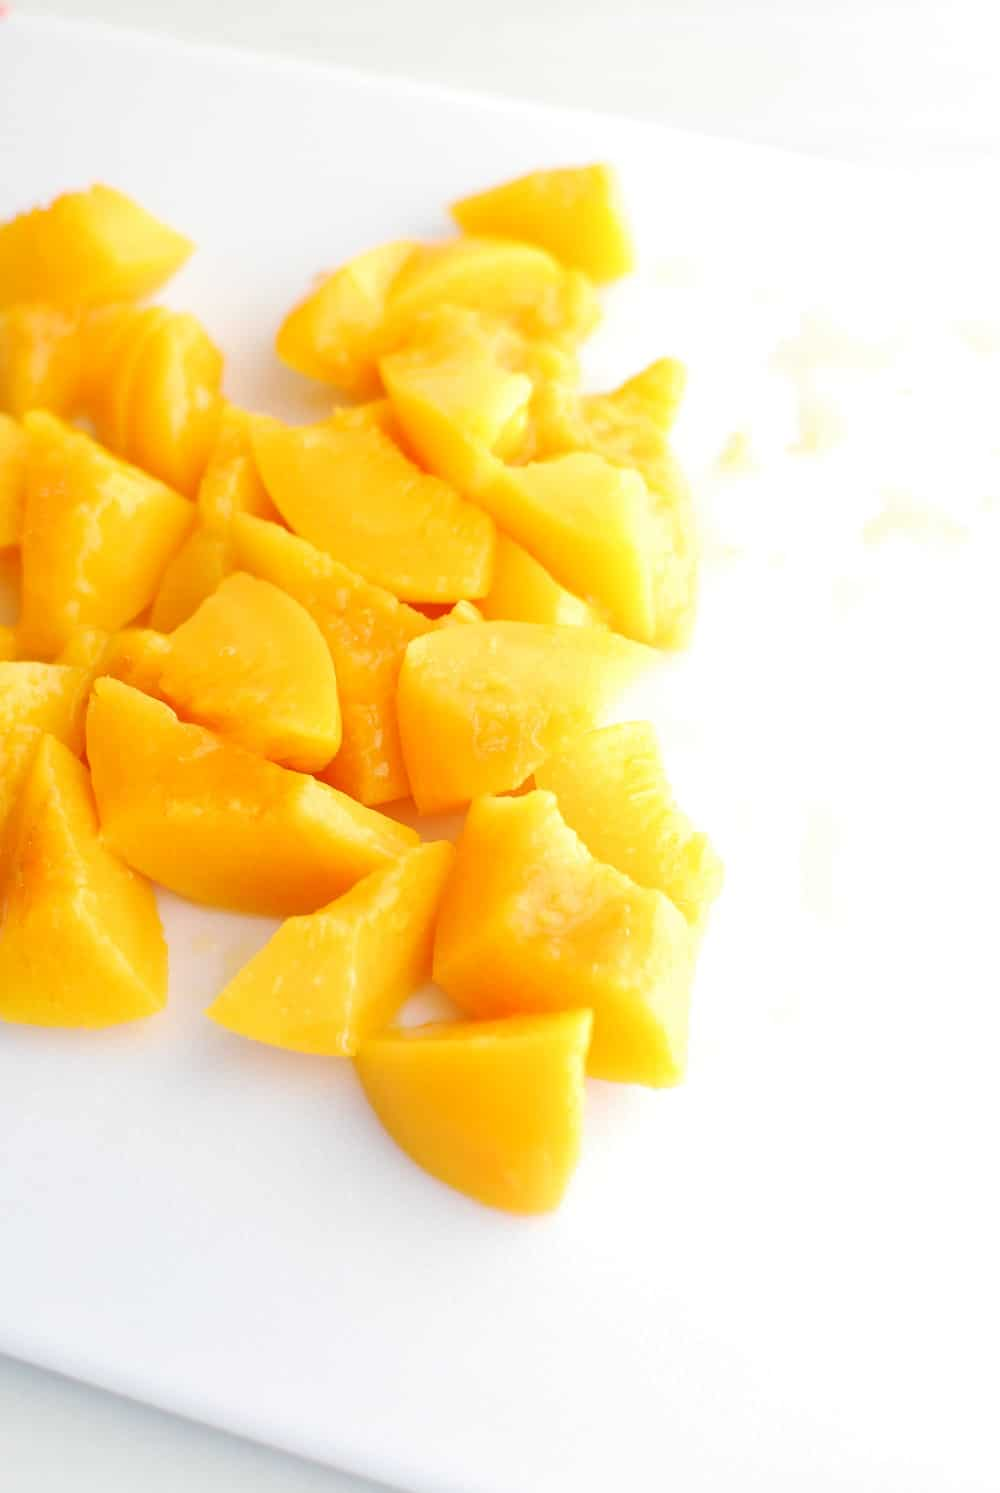 chopped up peaches on a cutting board